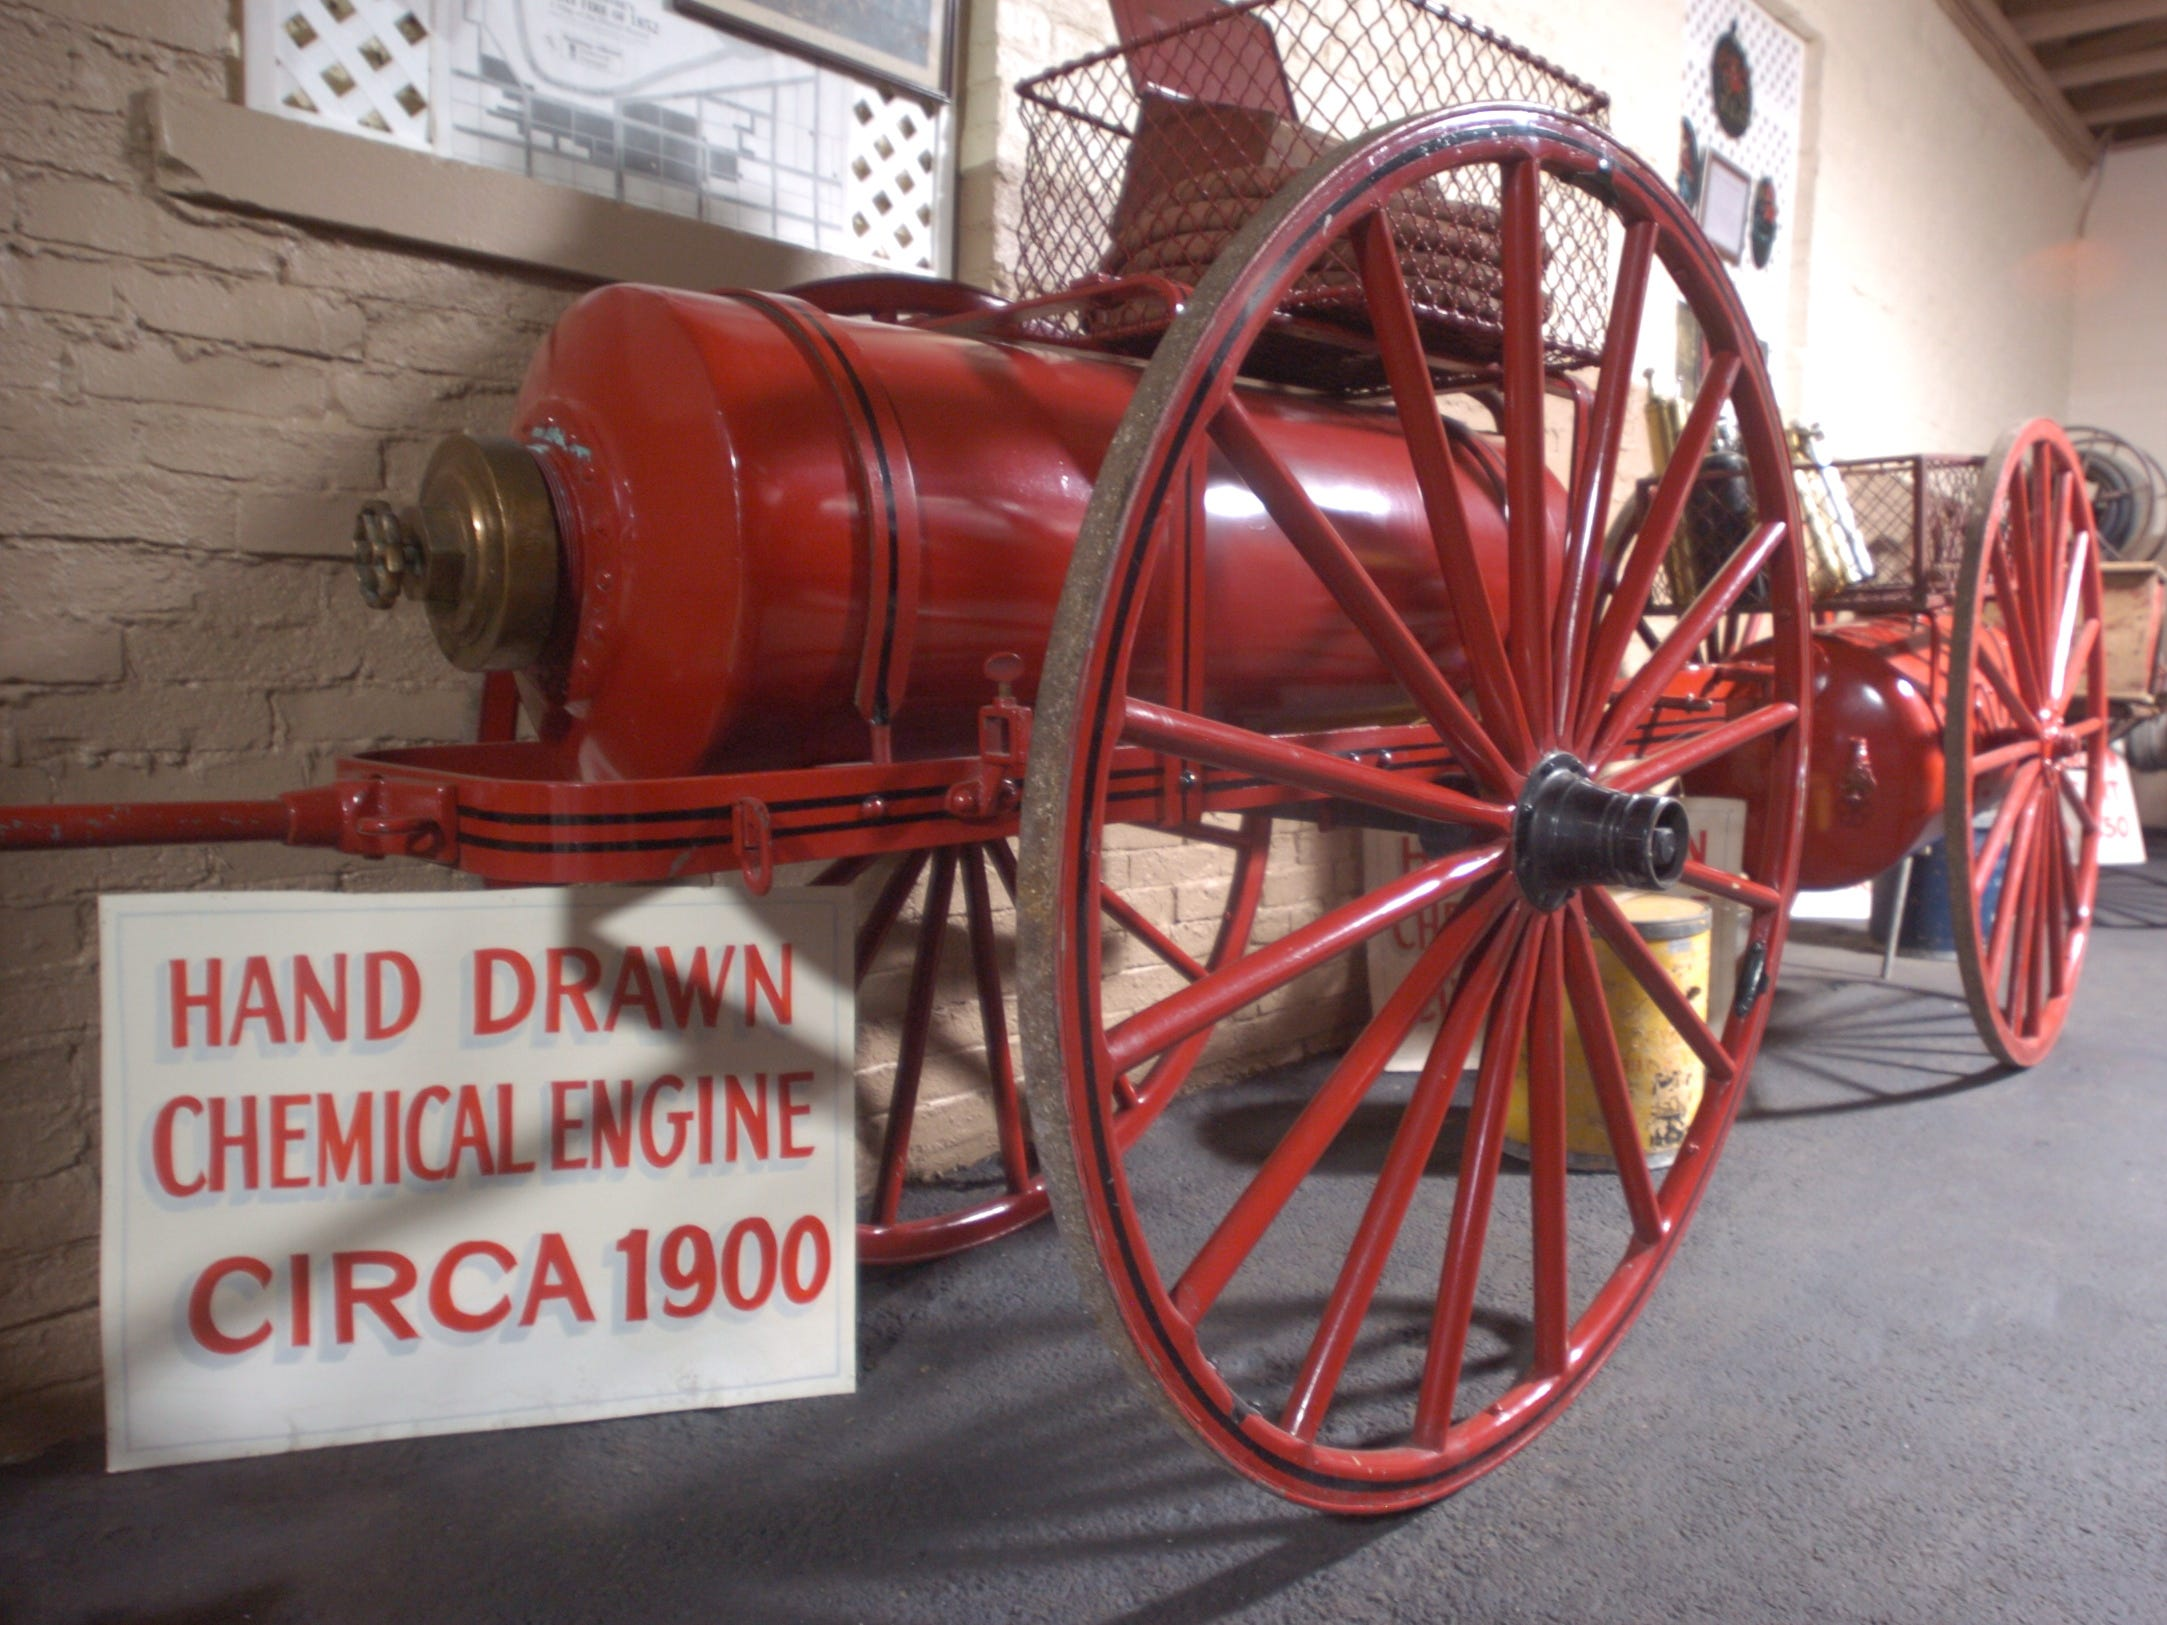 This hand drawn chemical engine from around 1900 is among the items on display at the Phoenix Firehouse Museum on East Second Street.